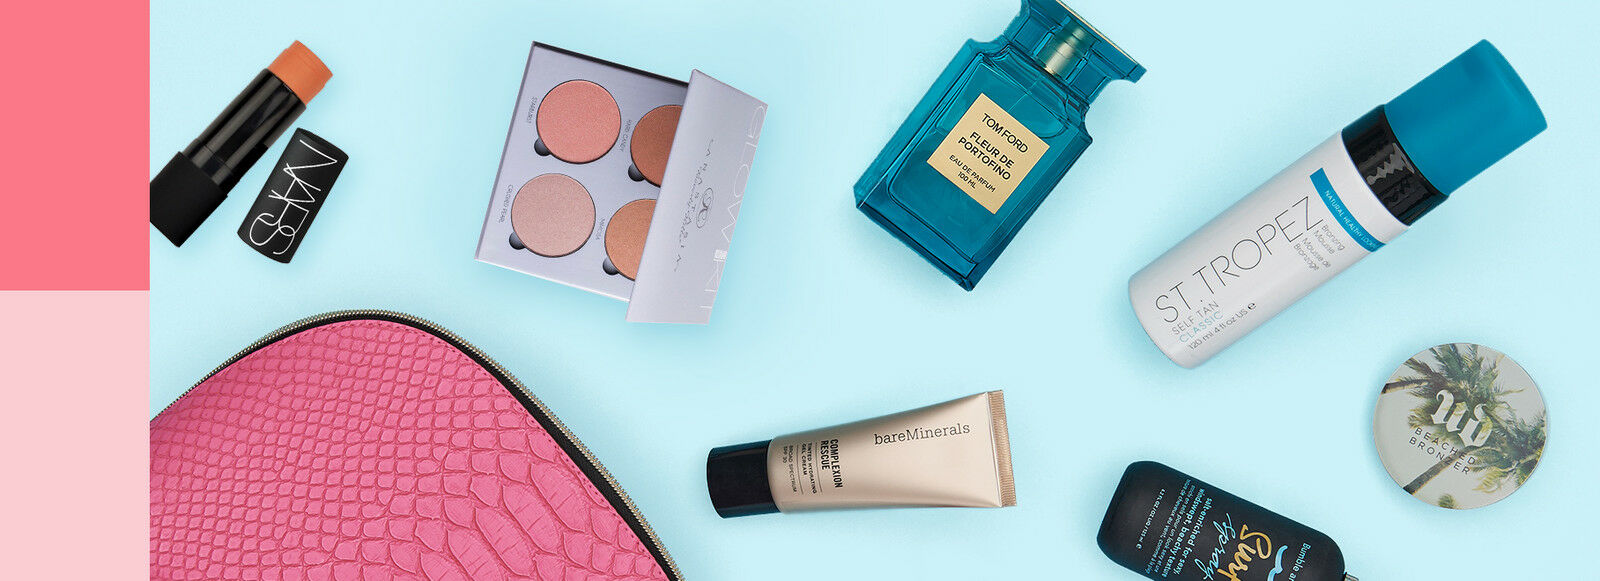 This season's best makeup, skin care, and more from $9.99.